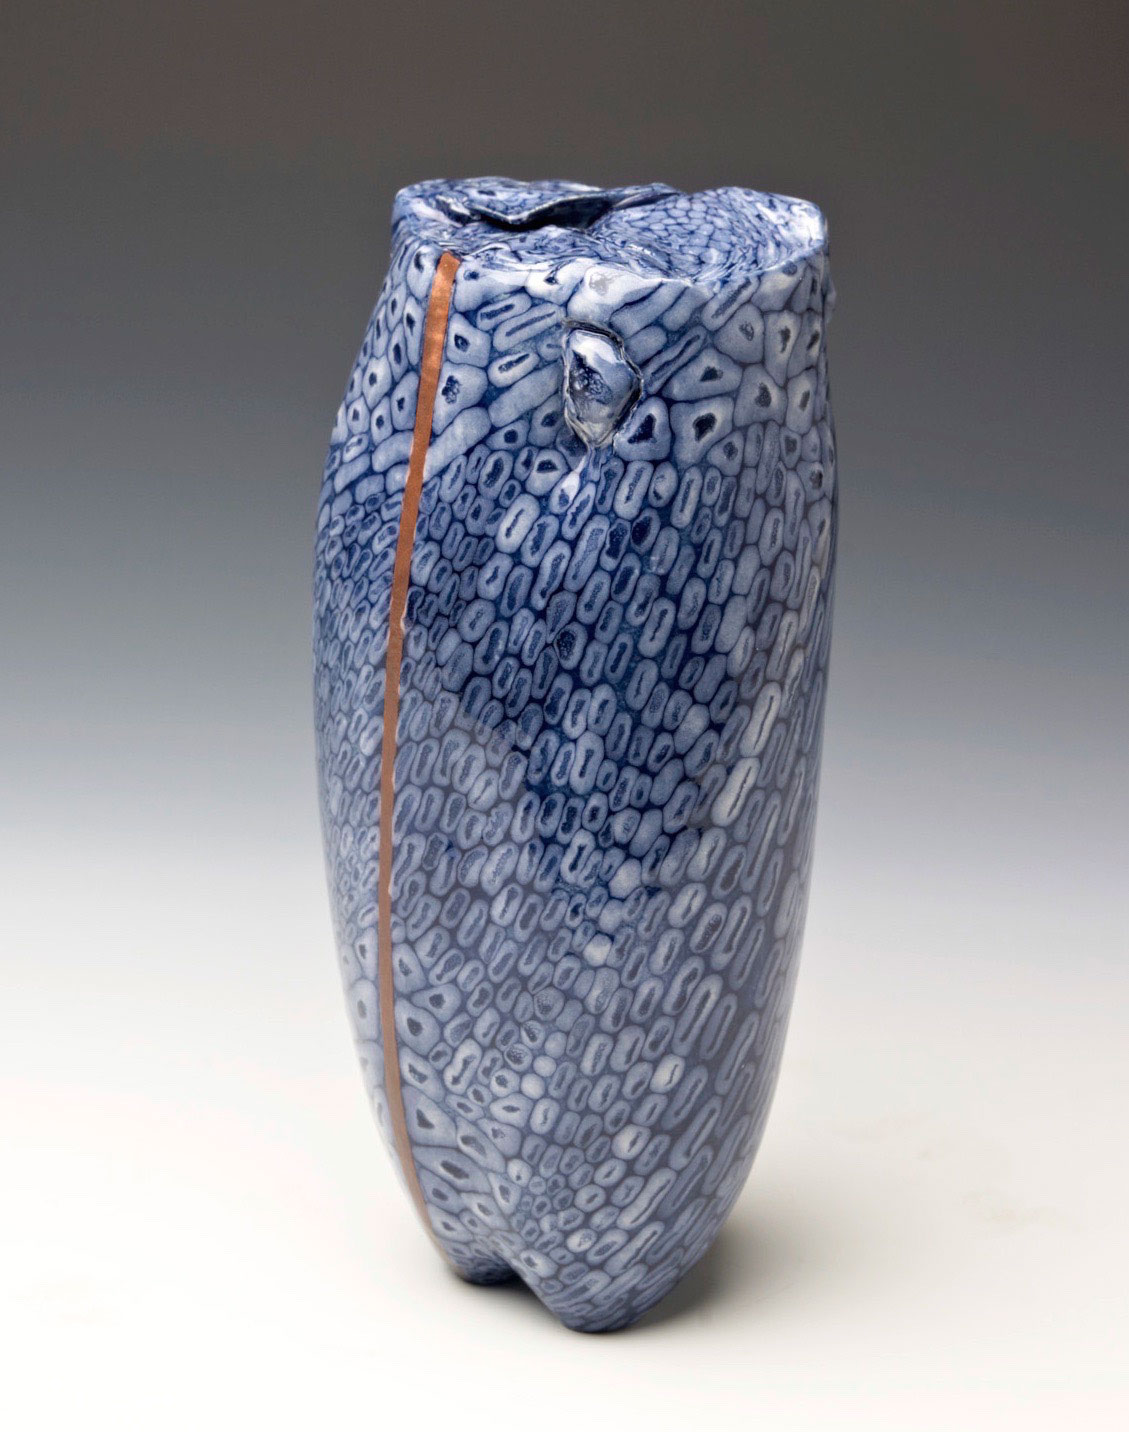 Weird ugly pottery ceramic pot vase handmade signed by Artist cool glaze spotted looks like a spaceship